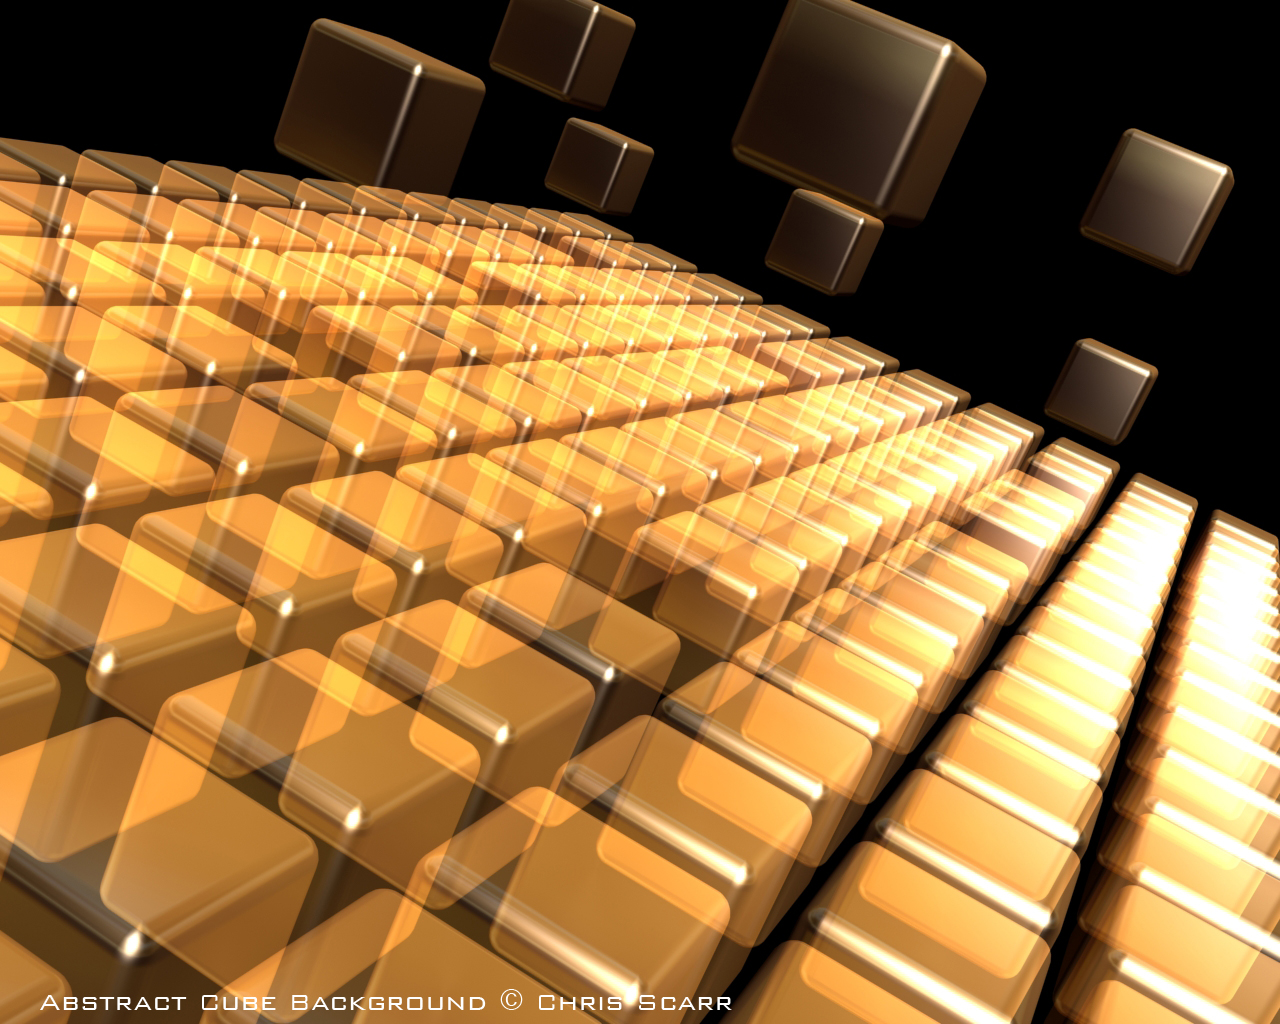 3D Abstract Cube Background by Grimthor 1280x1024